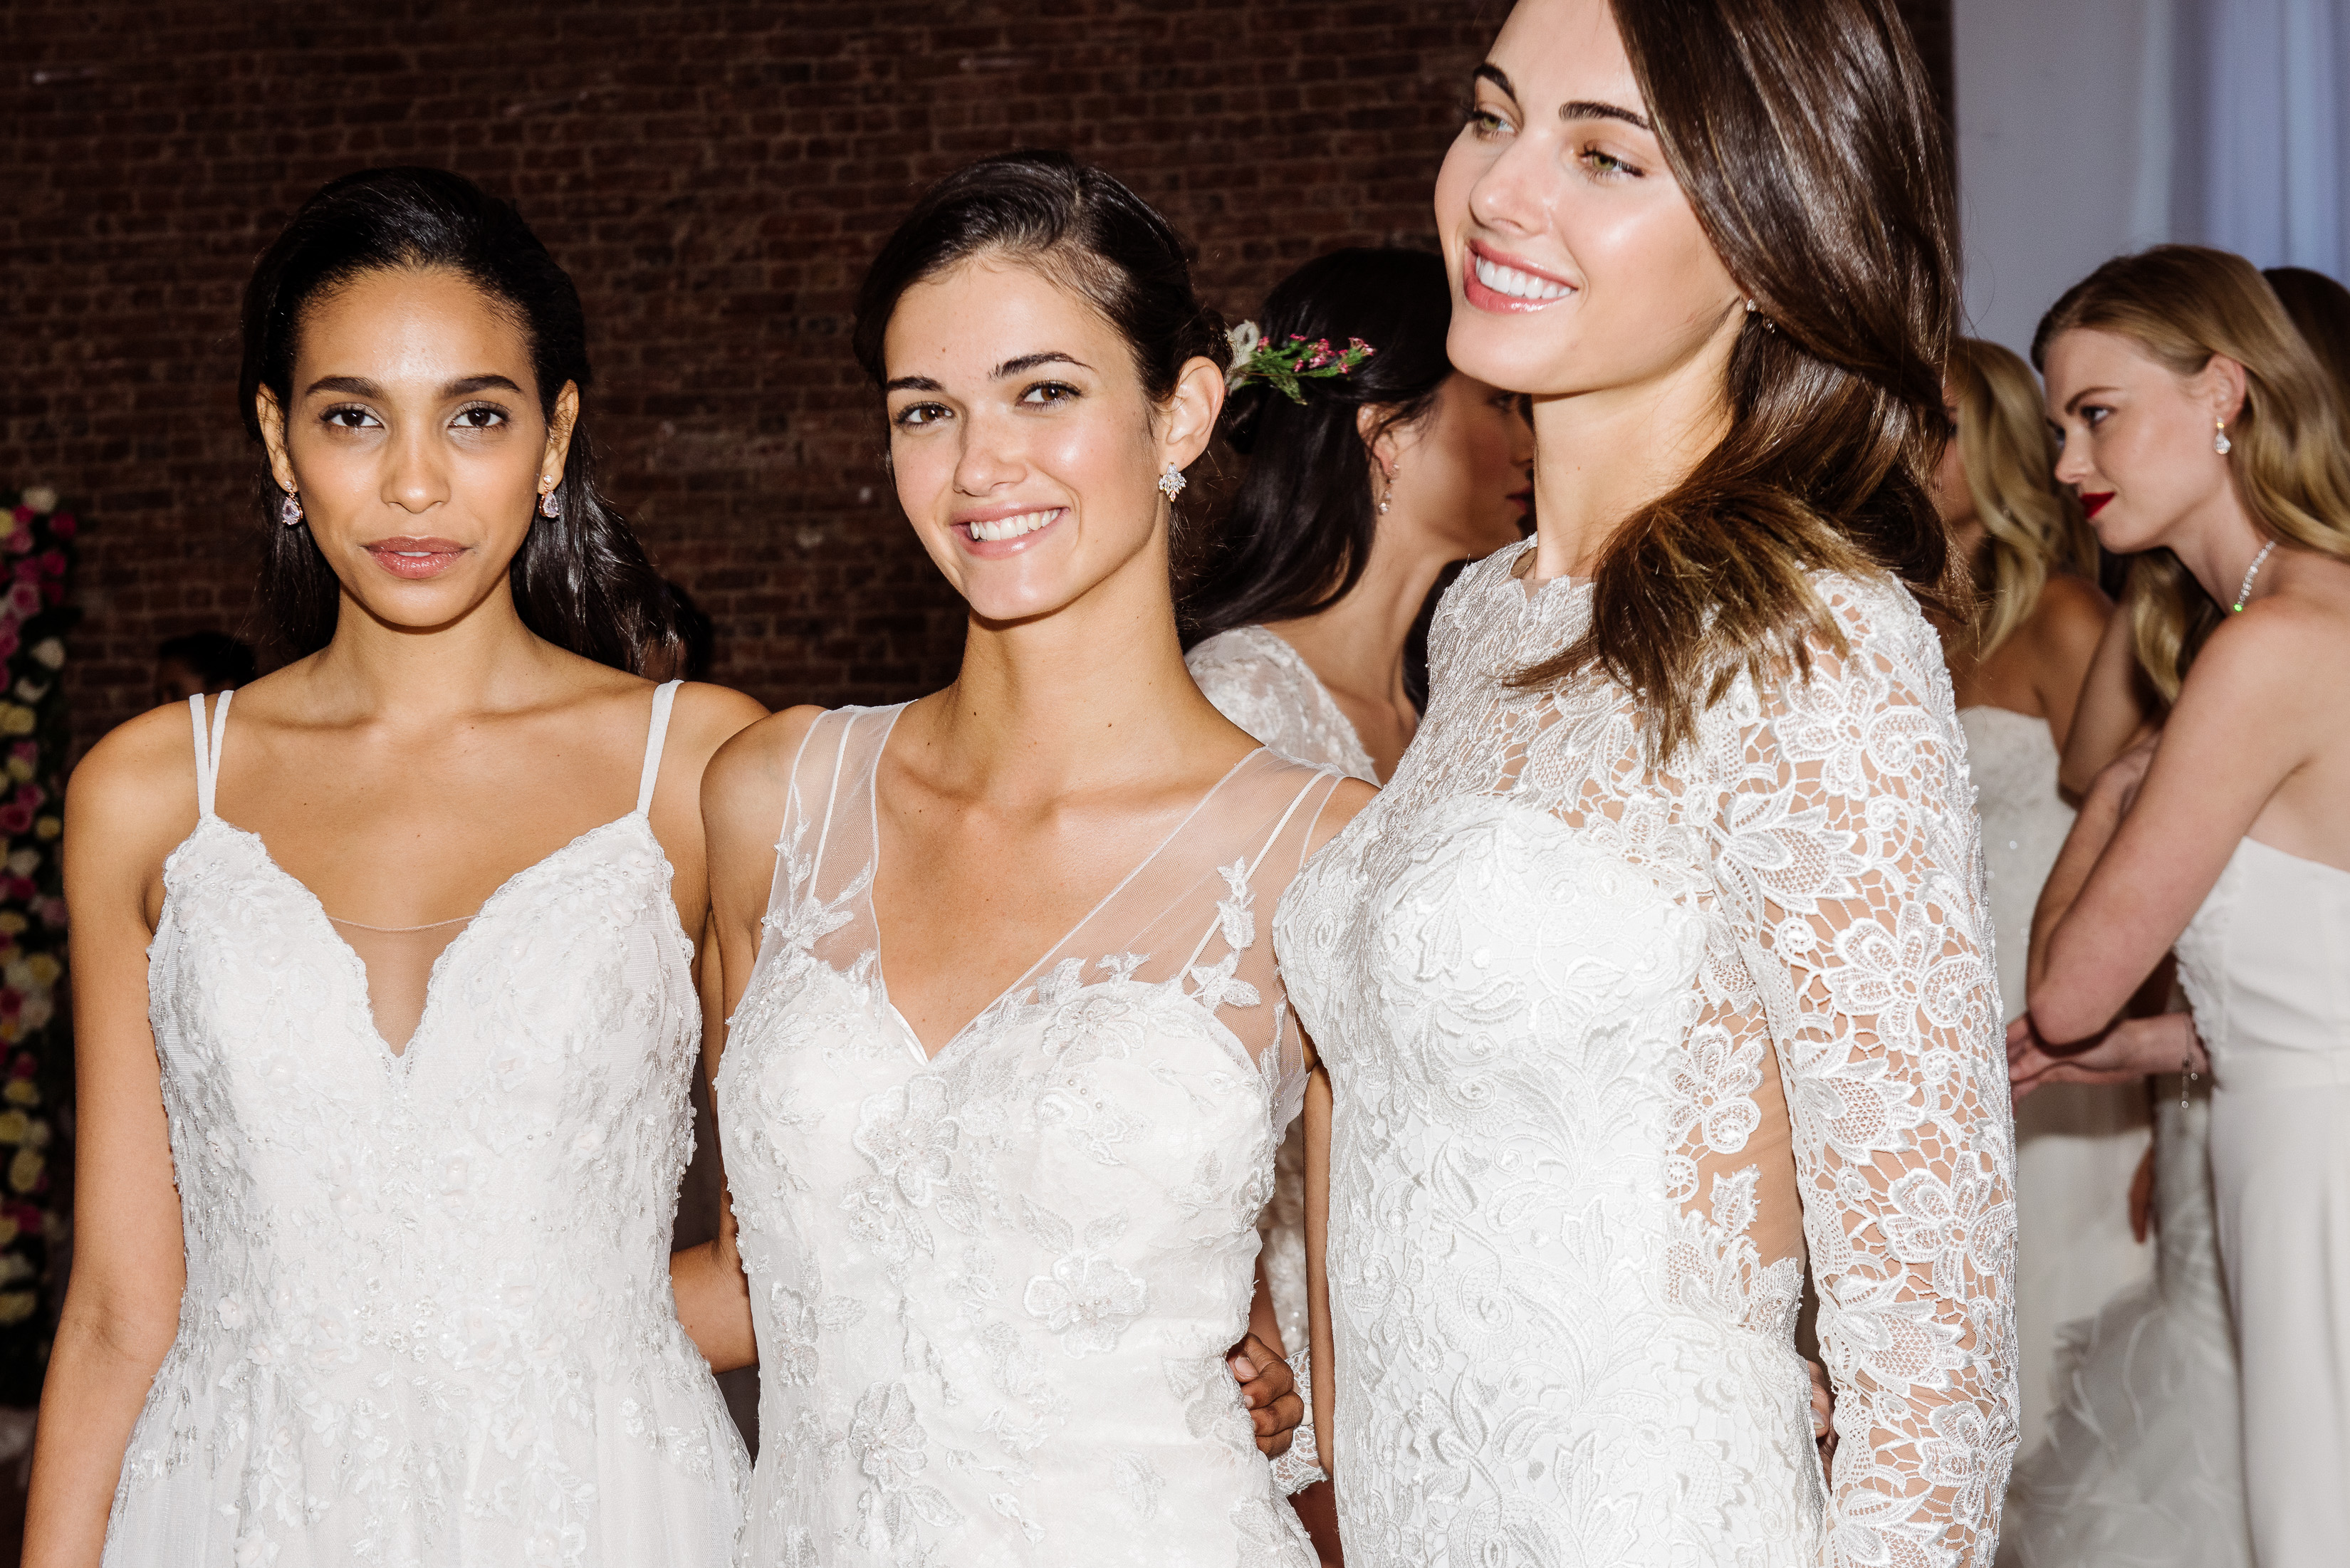 The proliferation of wedding gowns means brides-to-be have more options.